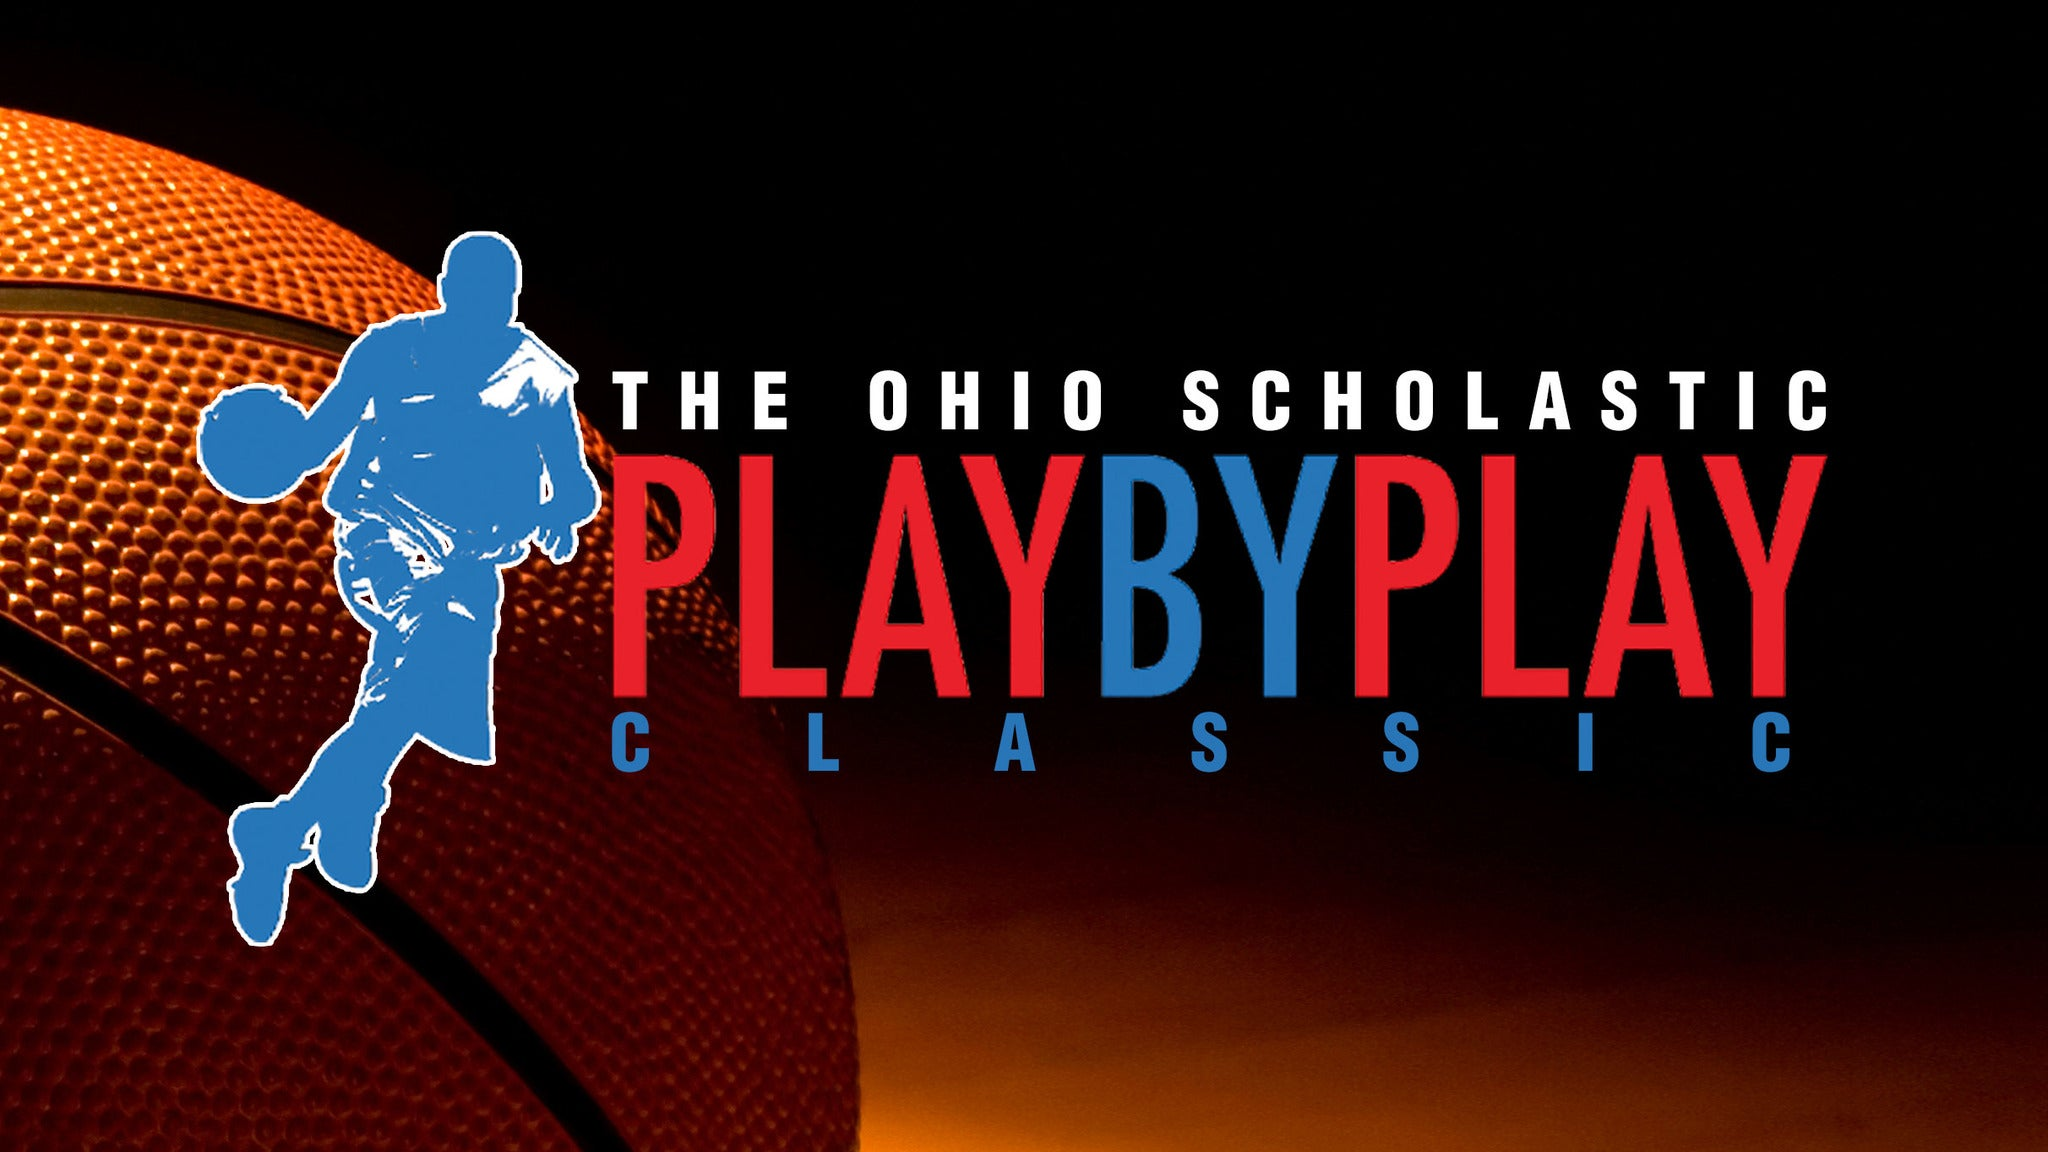 Scholastic Play By Play High School Basketball Tournament